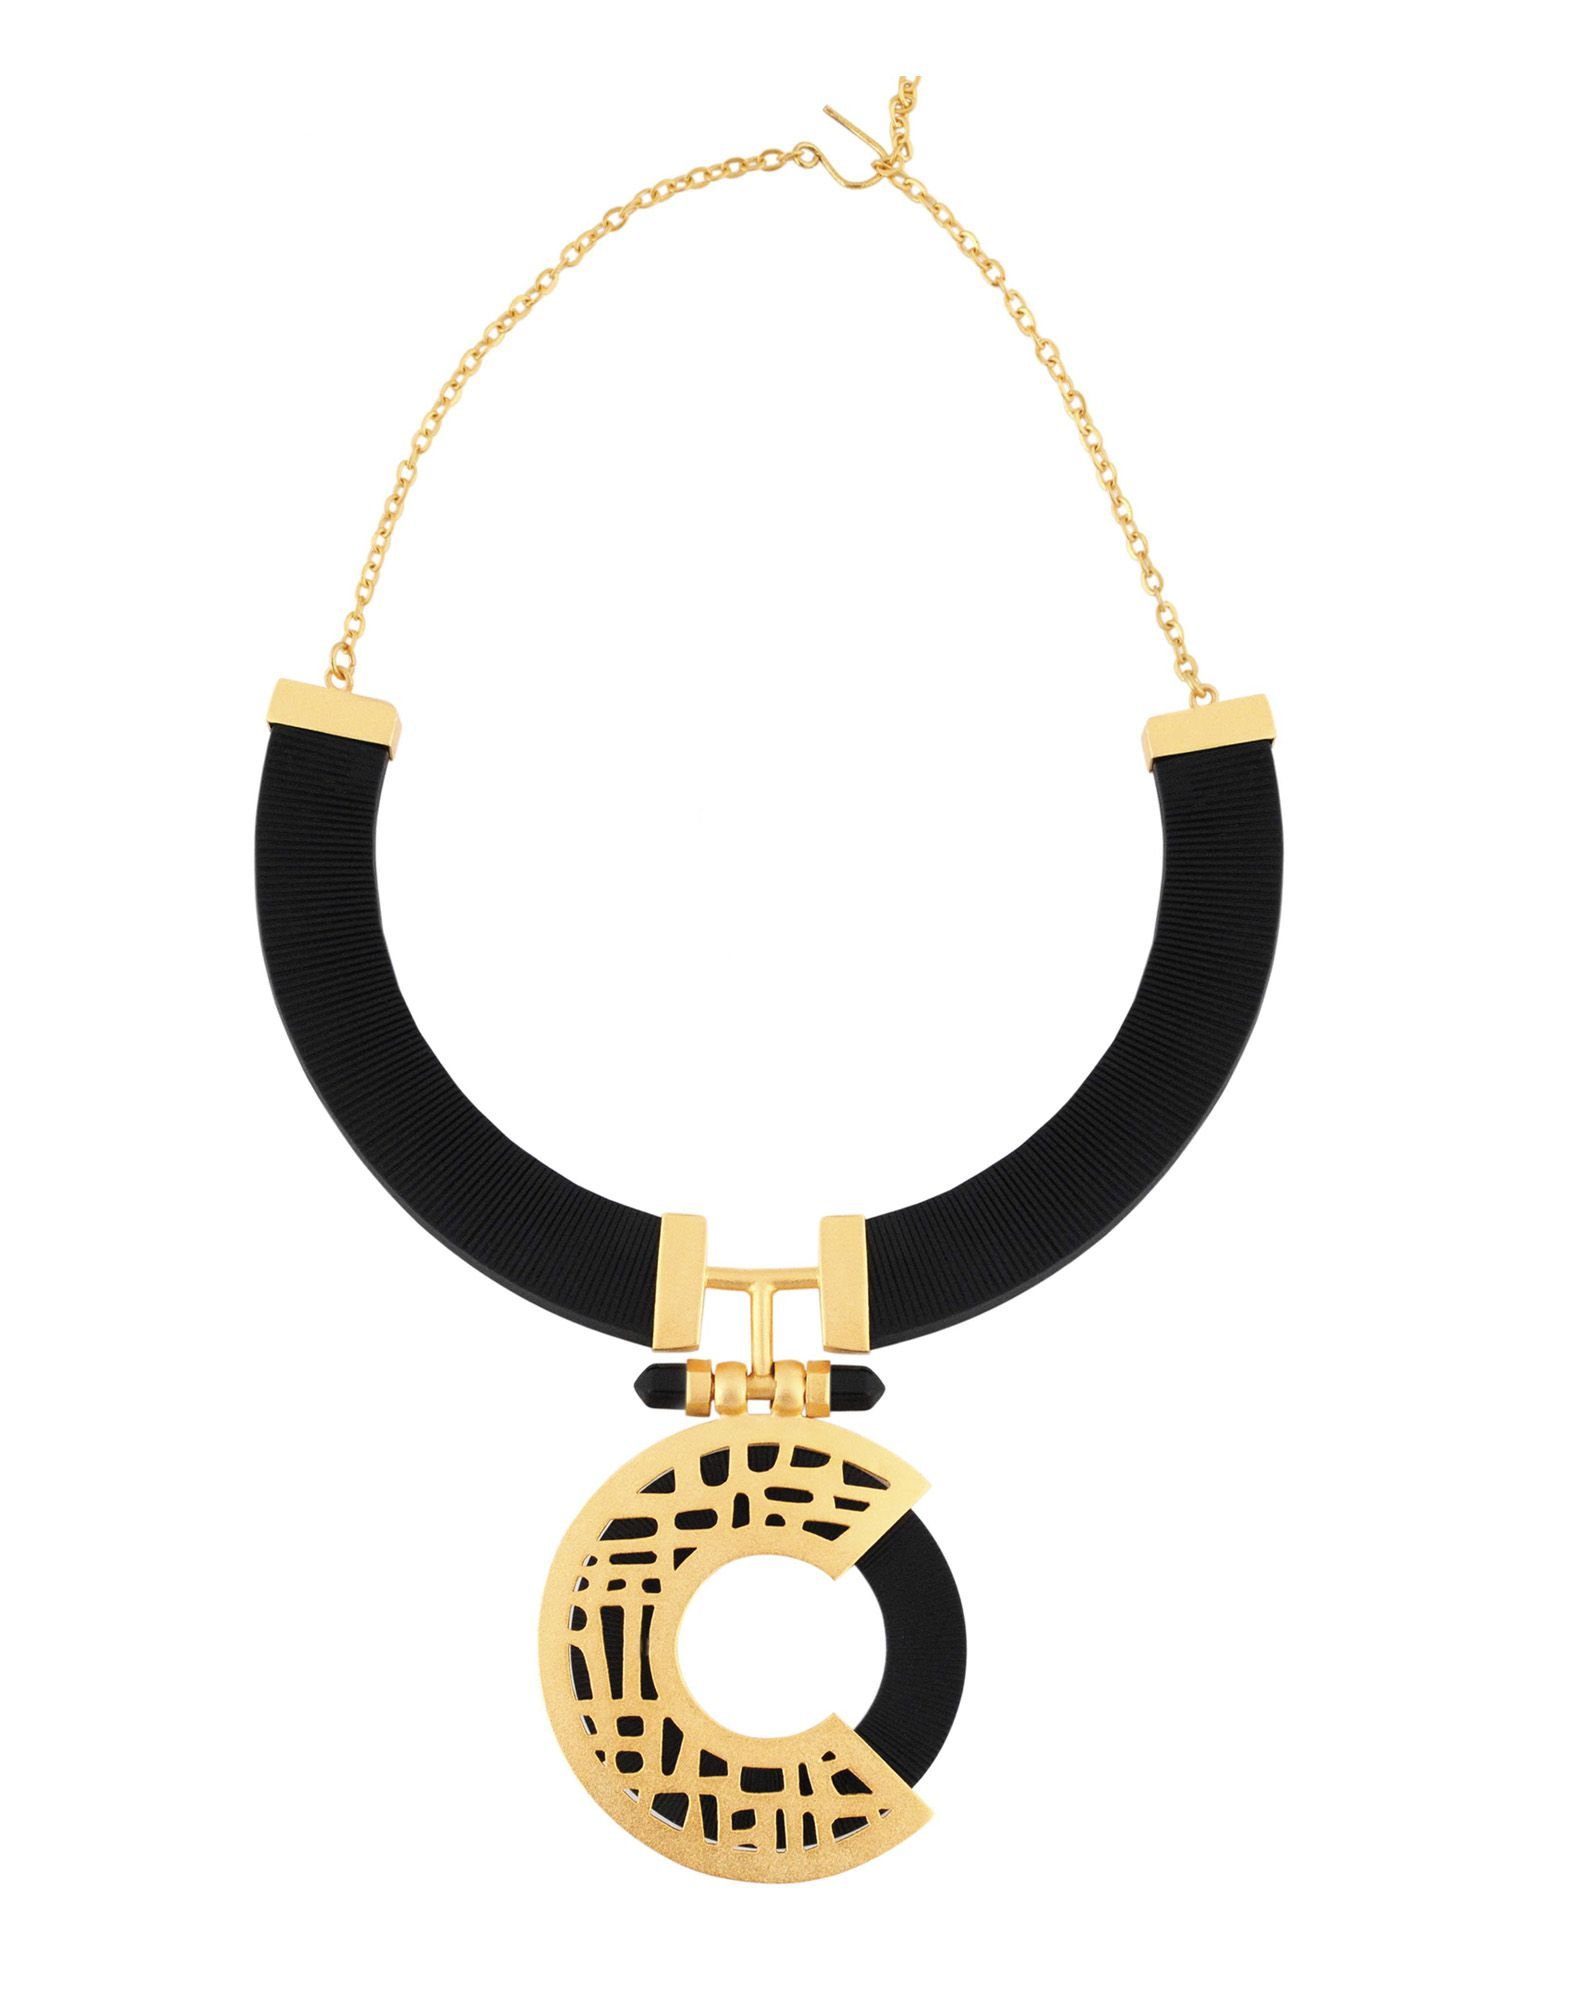 Collana Jude Benhalim Urban Maze Necklace - Donna - Acquista online su